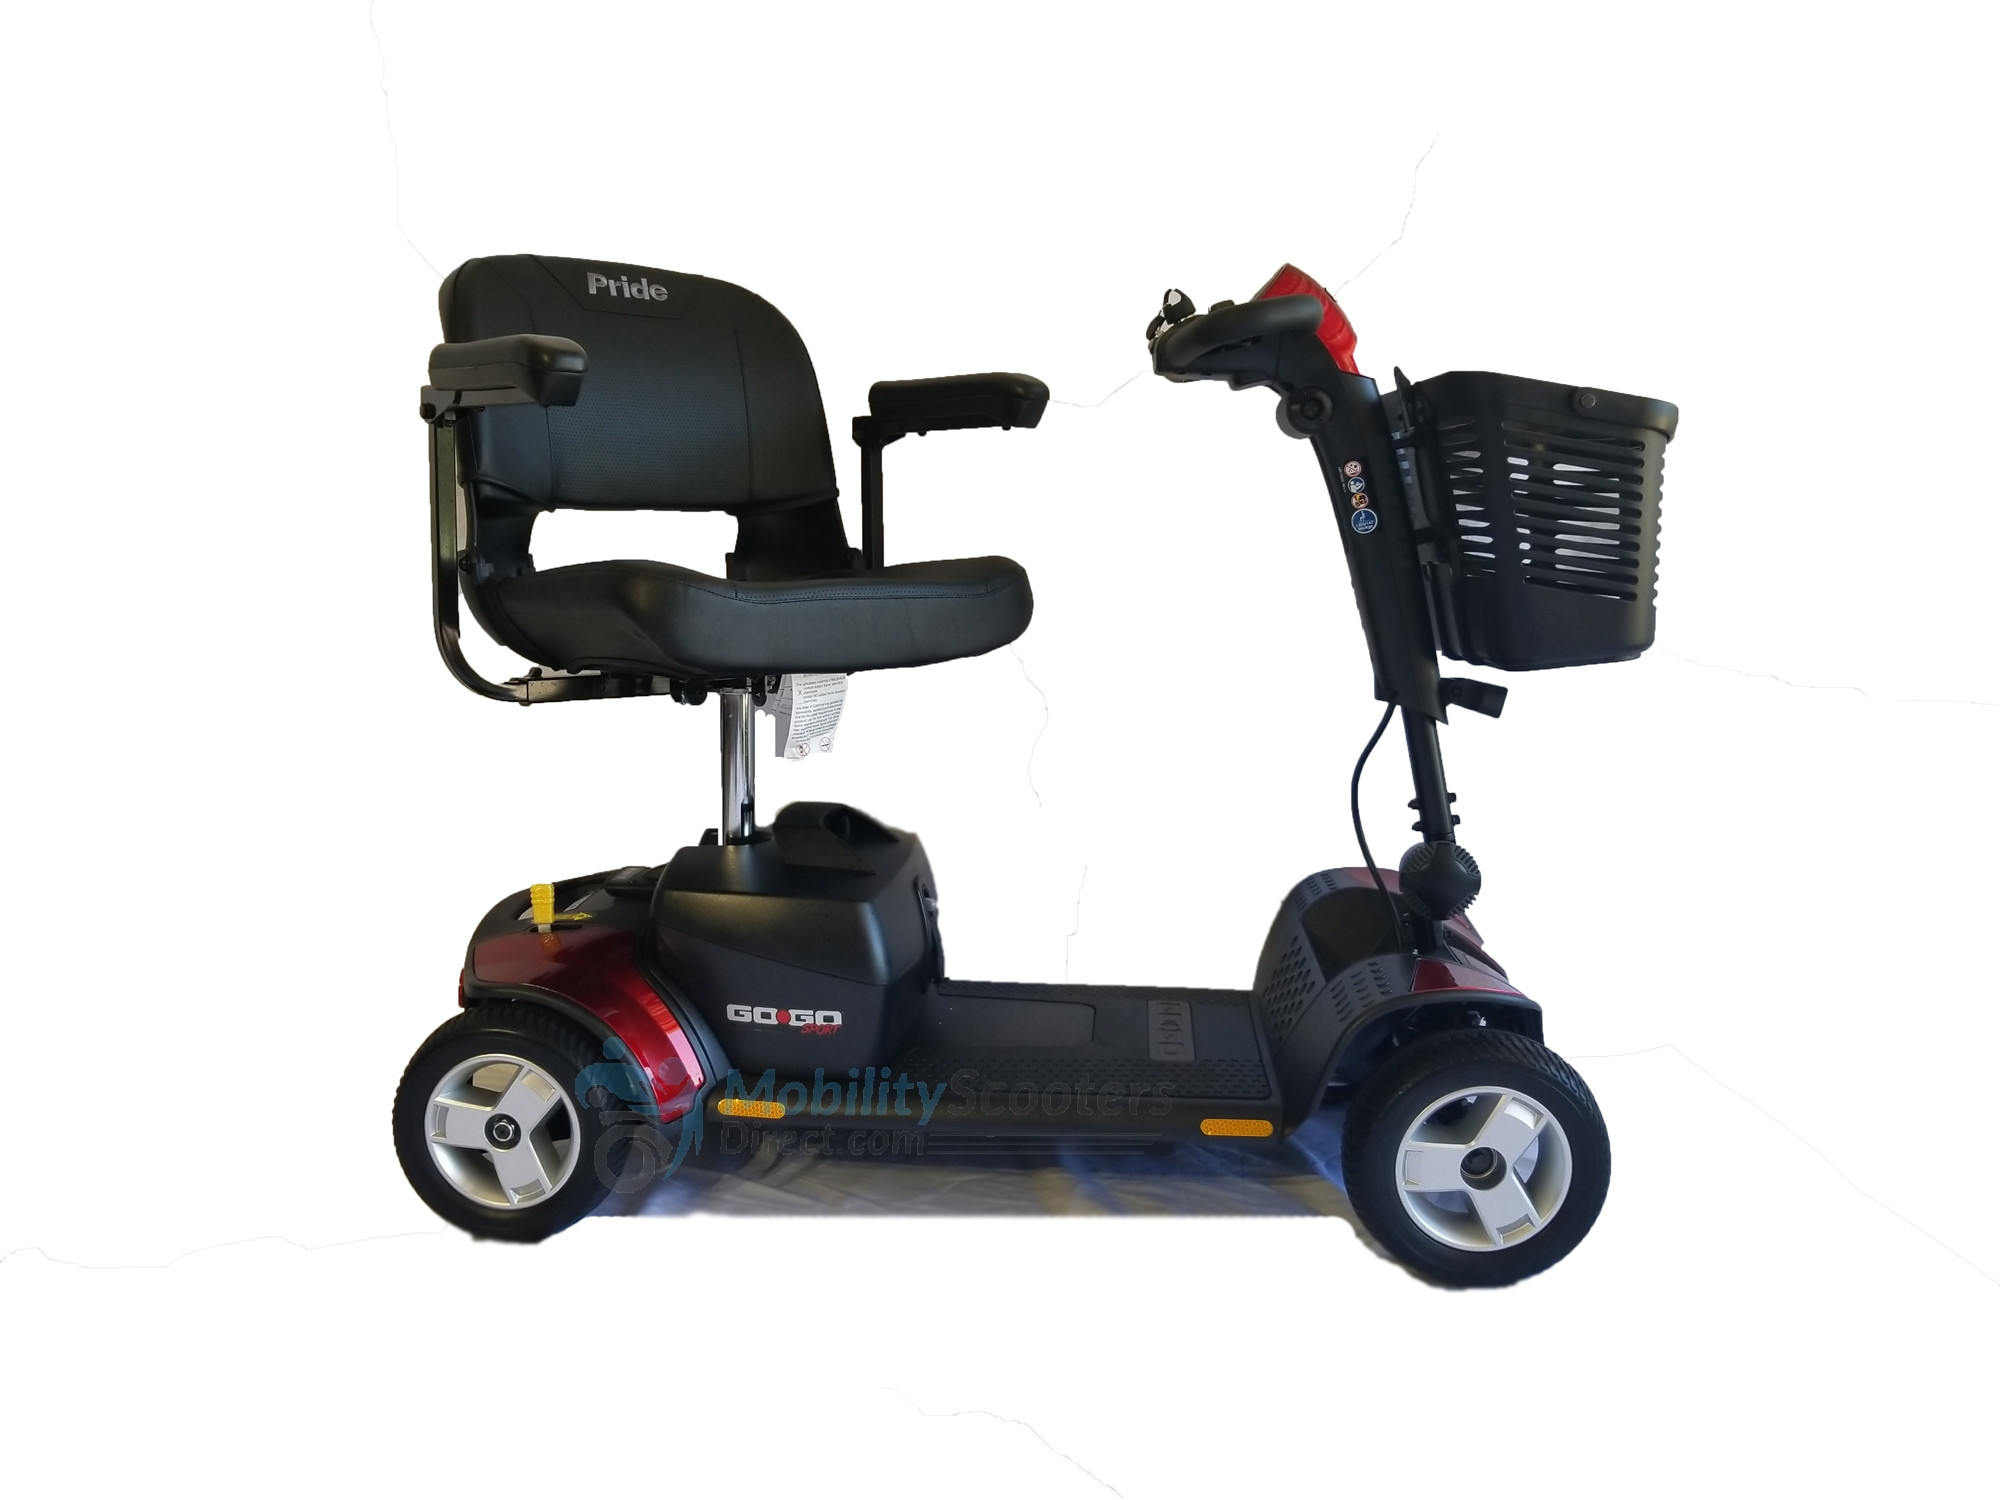 Pride Mobility Scooter >> Go Go Sport Mobility Scooter 4 Wheel